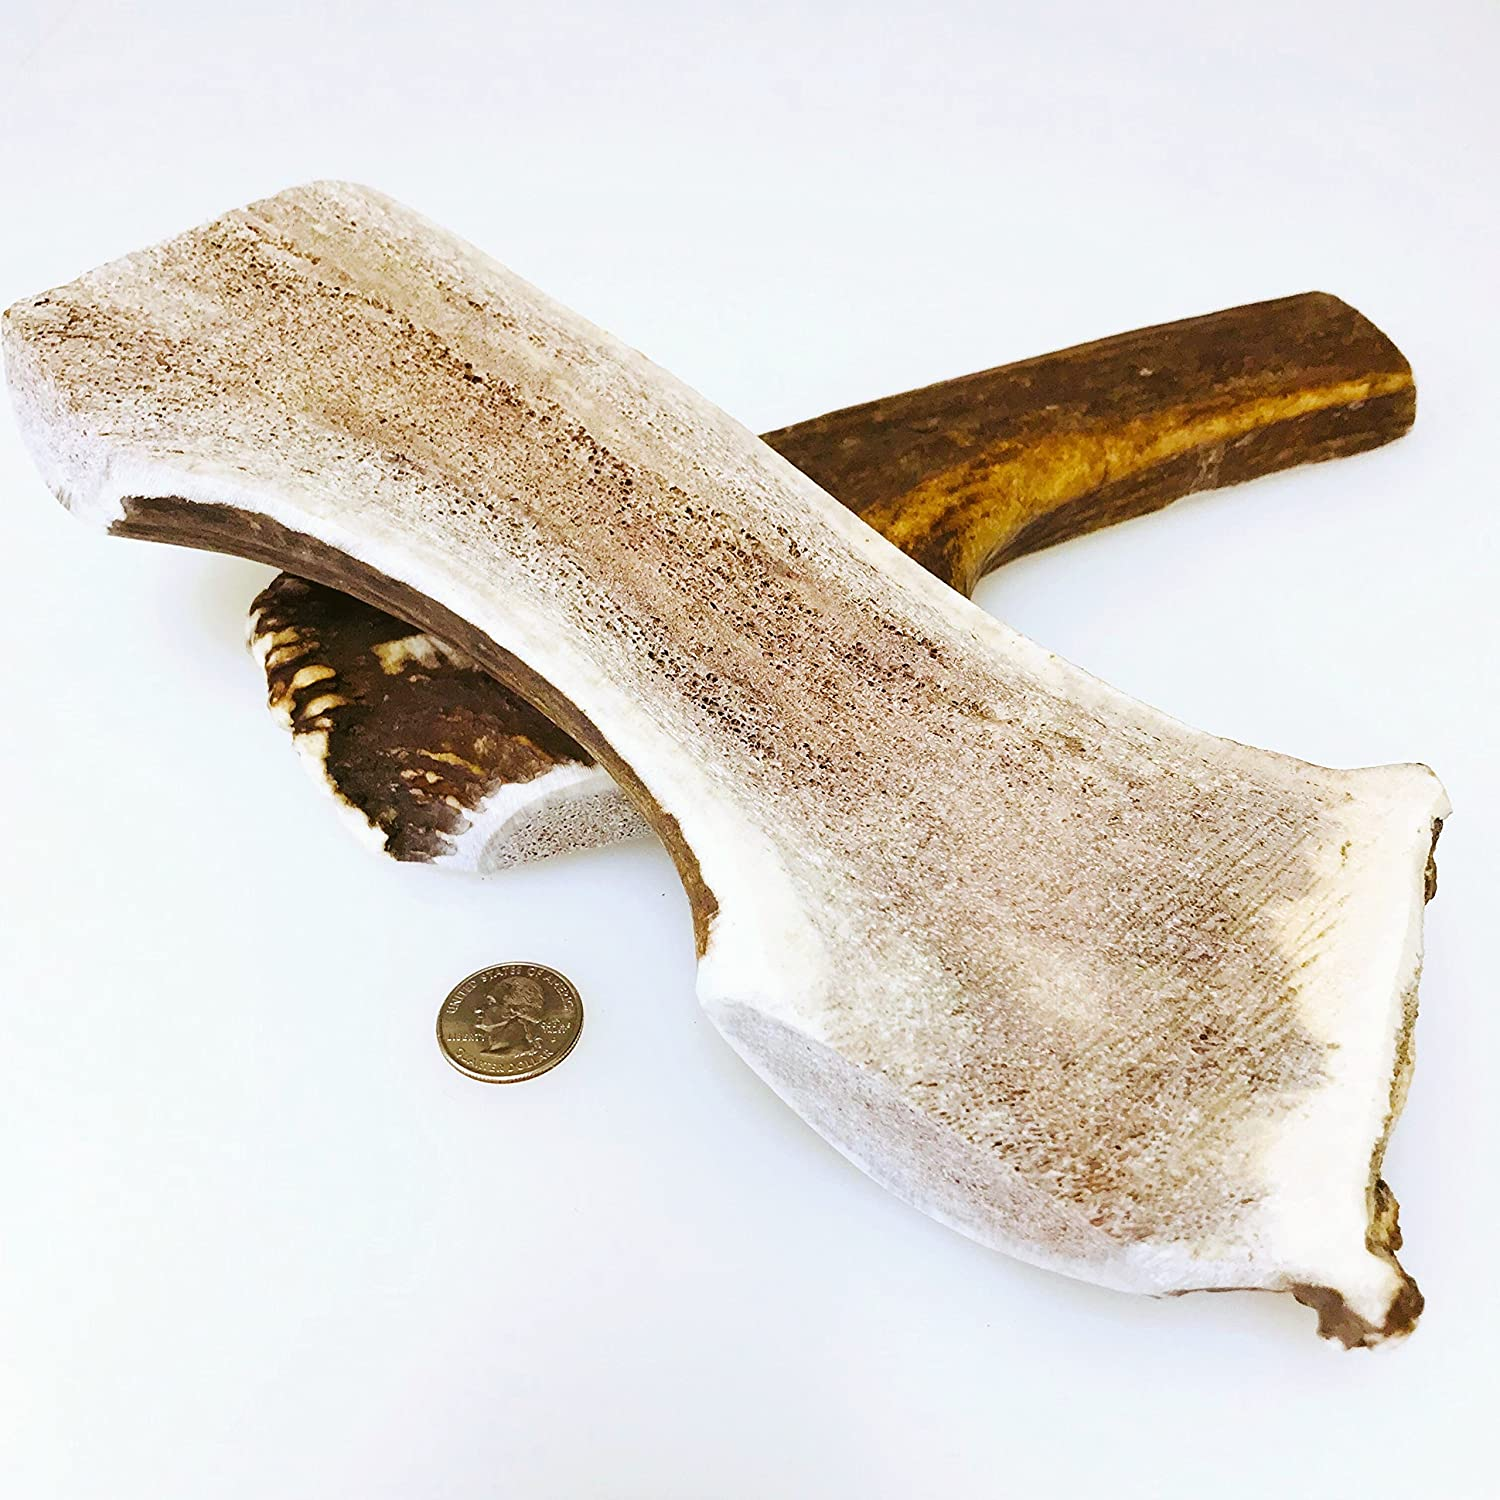 Mountain Dog Chews- Mammoth XXL-Split Elk Antler Dog Chew 10-11Inches Long 14-16 OZ Fresh Grade A for Large Dogs